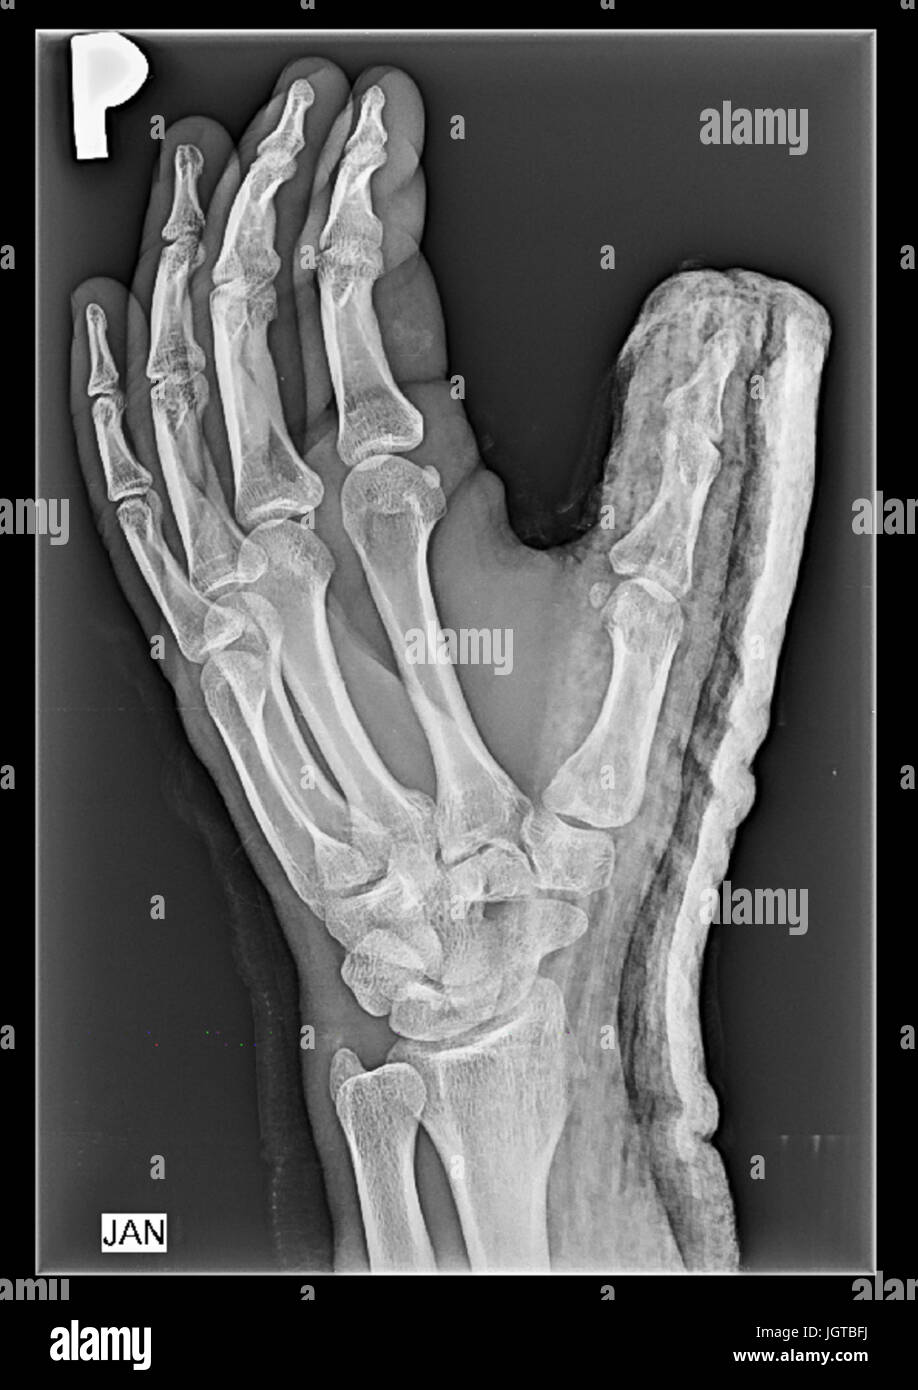 Finger Fracture Stockfotos & Finger Fracture Bilder - Alamy